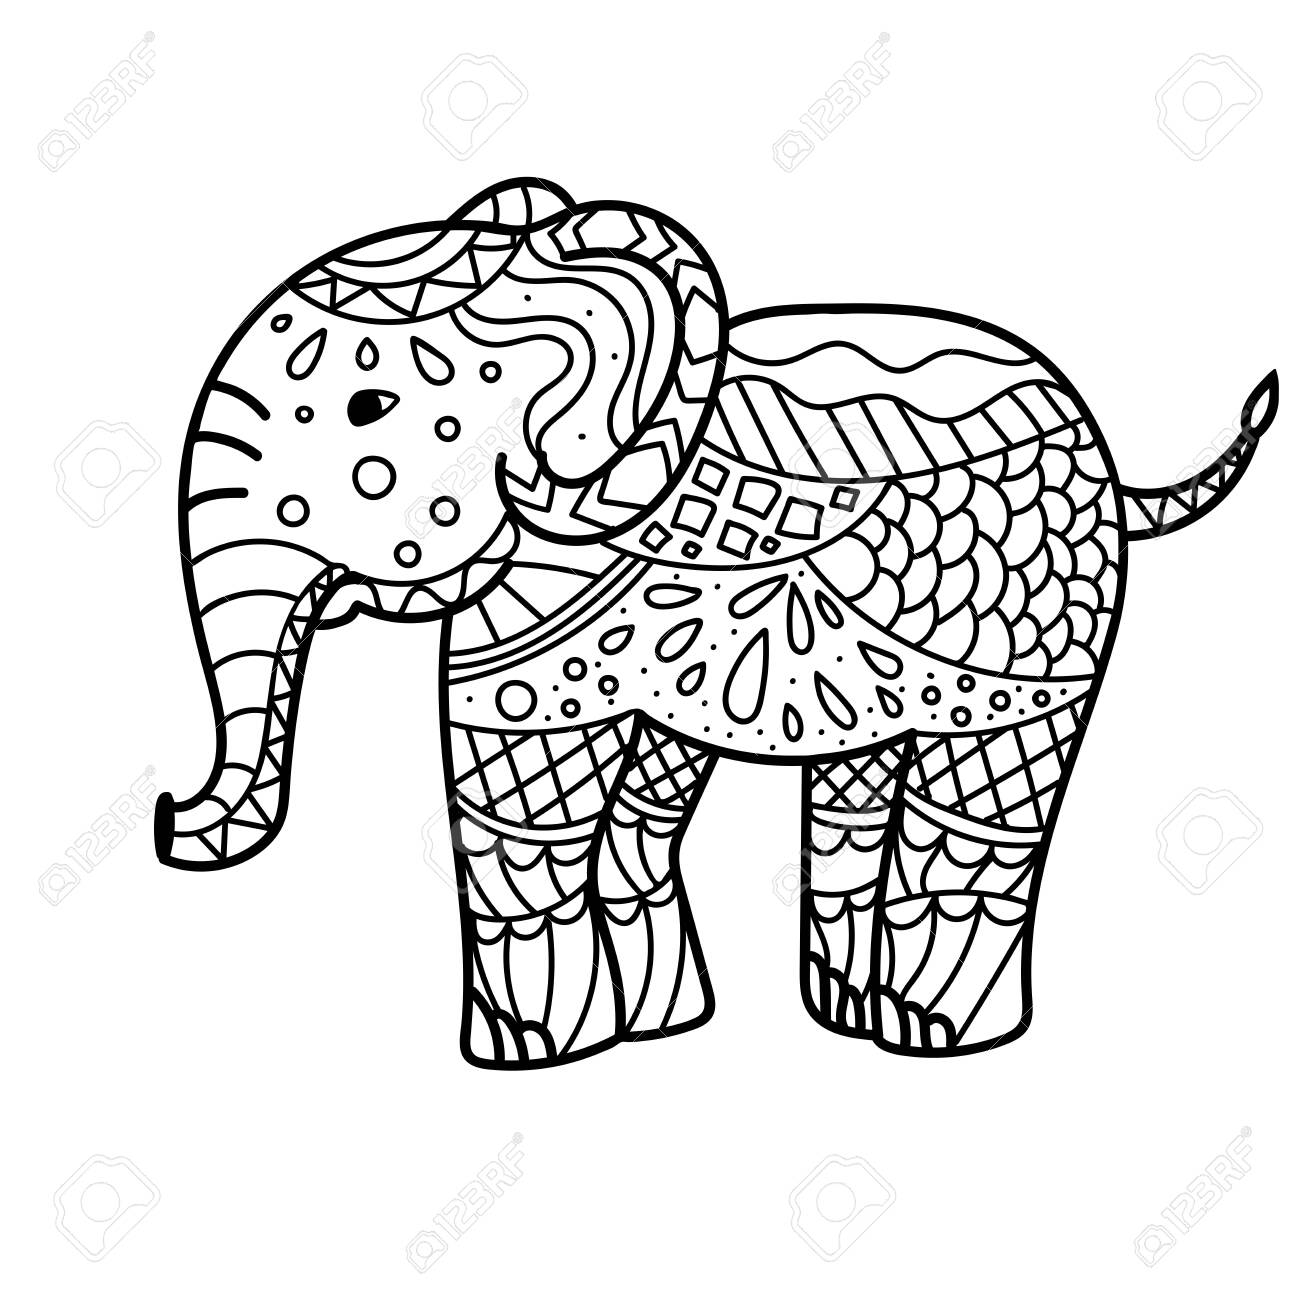 Hand drawn elephant coloring page. Coloring book page for adults,..